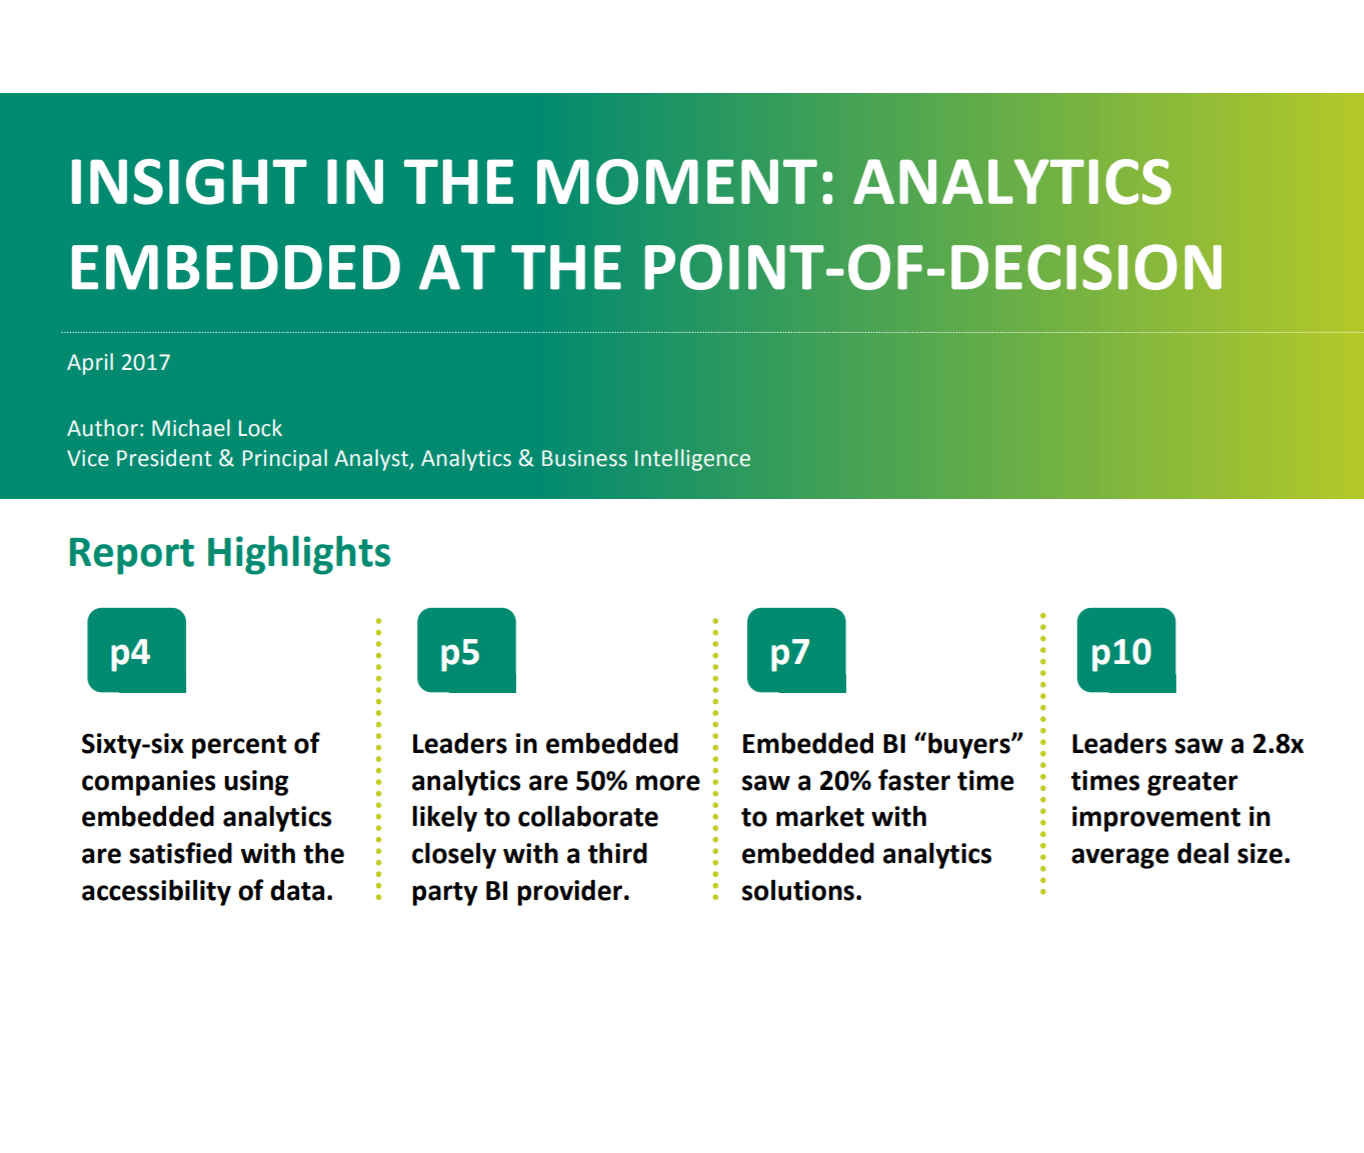 Embedded Analytics at the Point-of-Decision